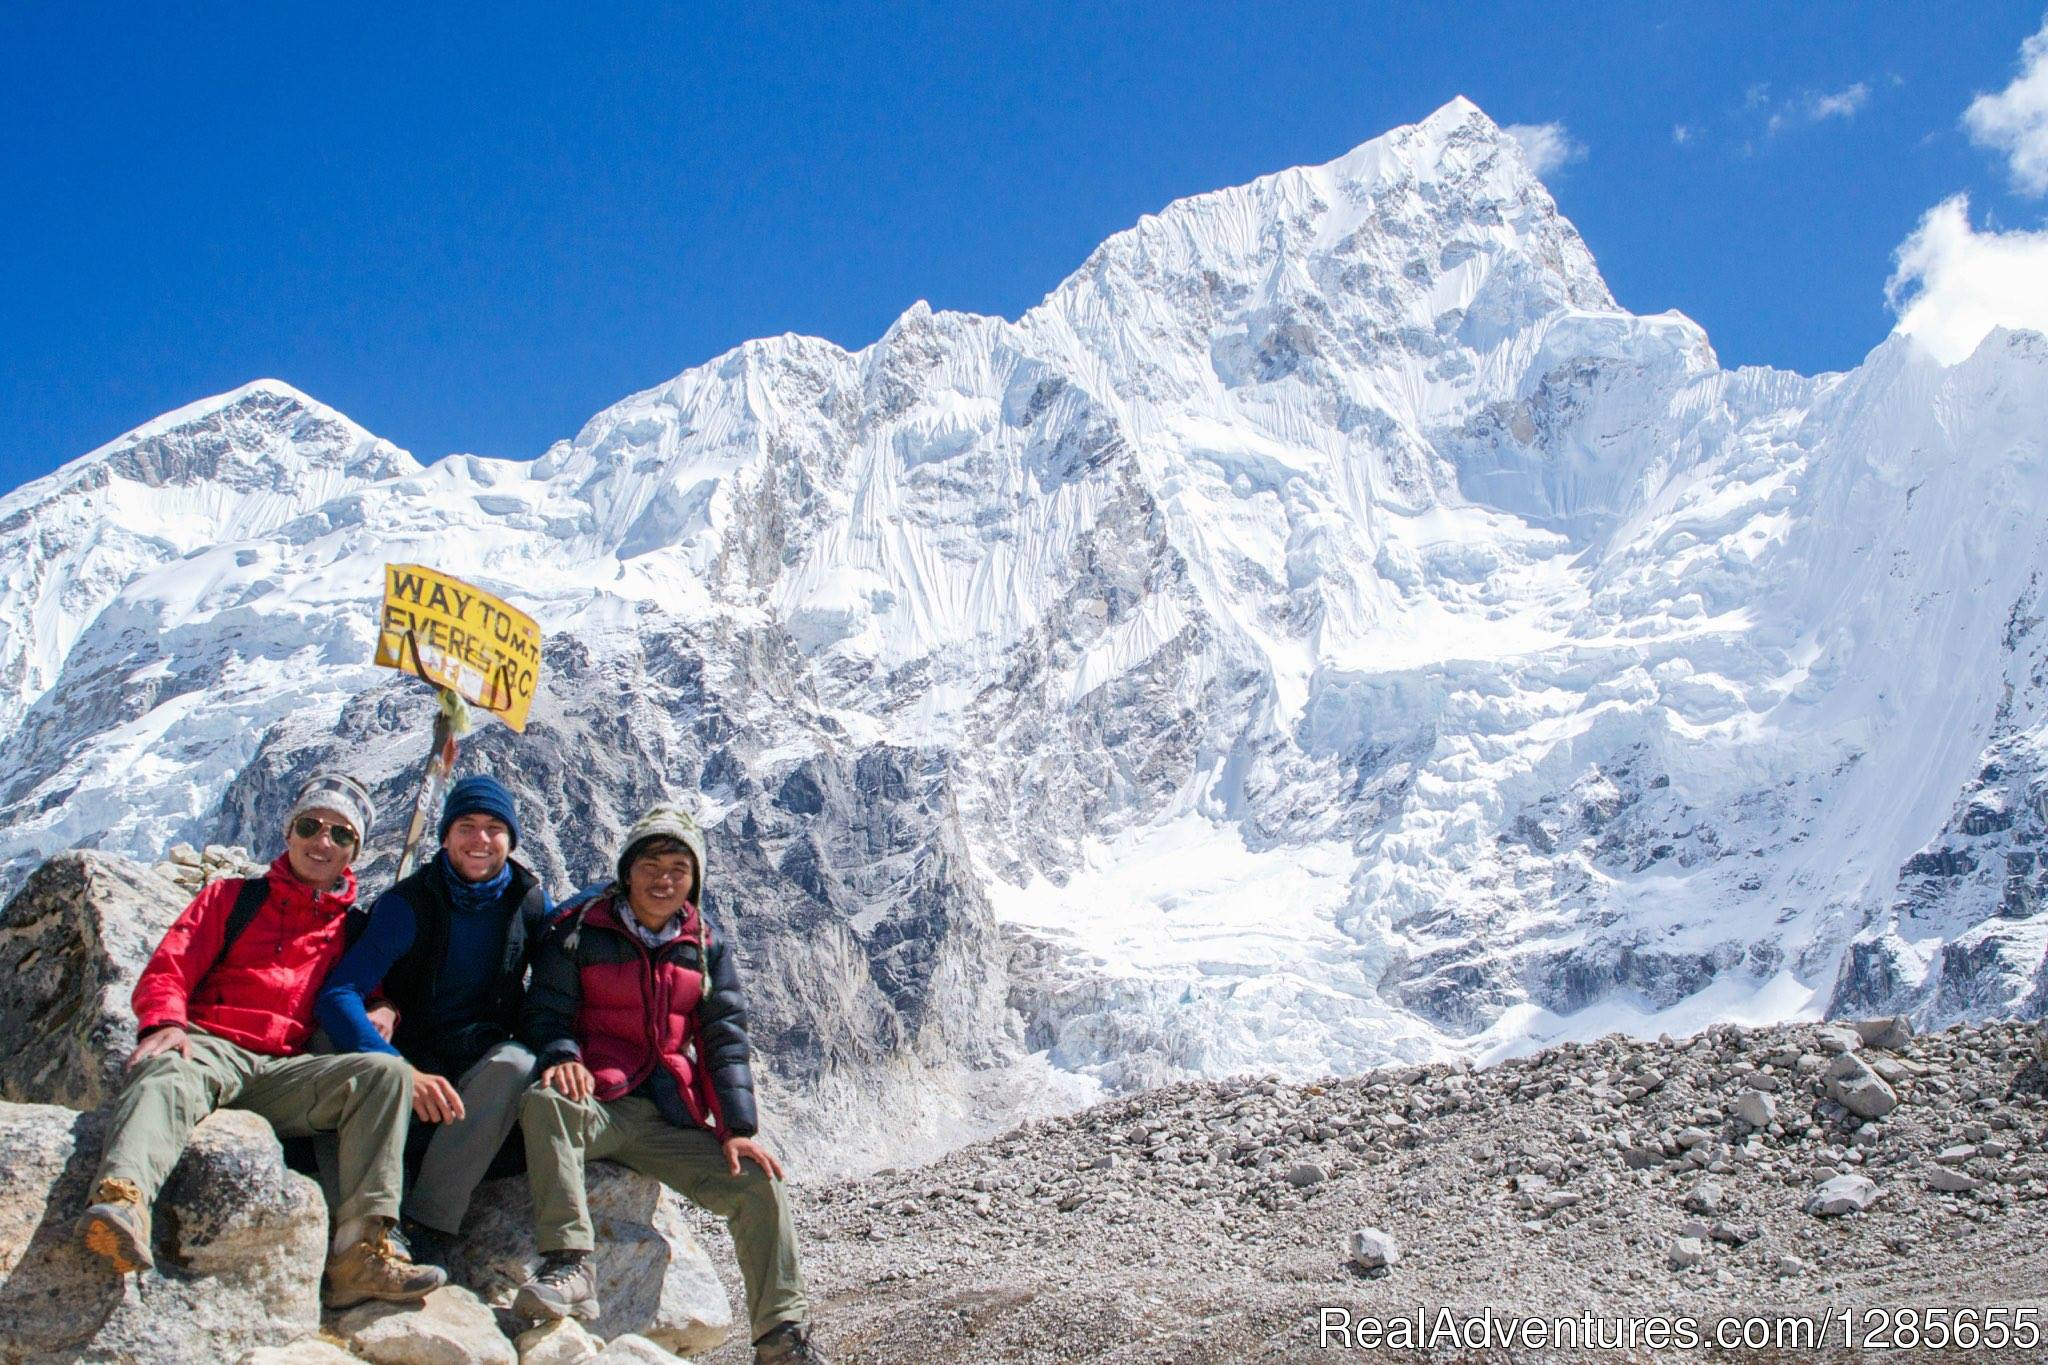 Our Guide Laximan & Chris are standing at Everest Base Camp